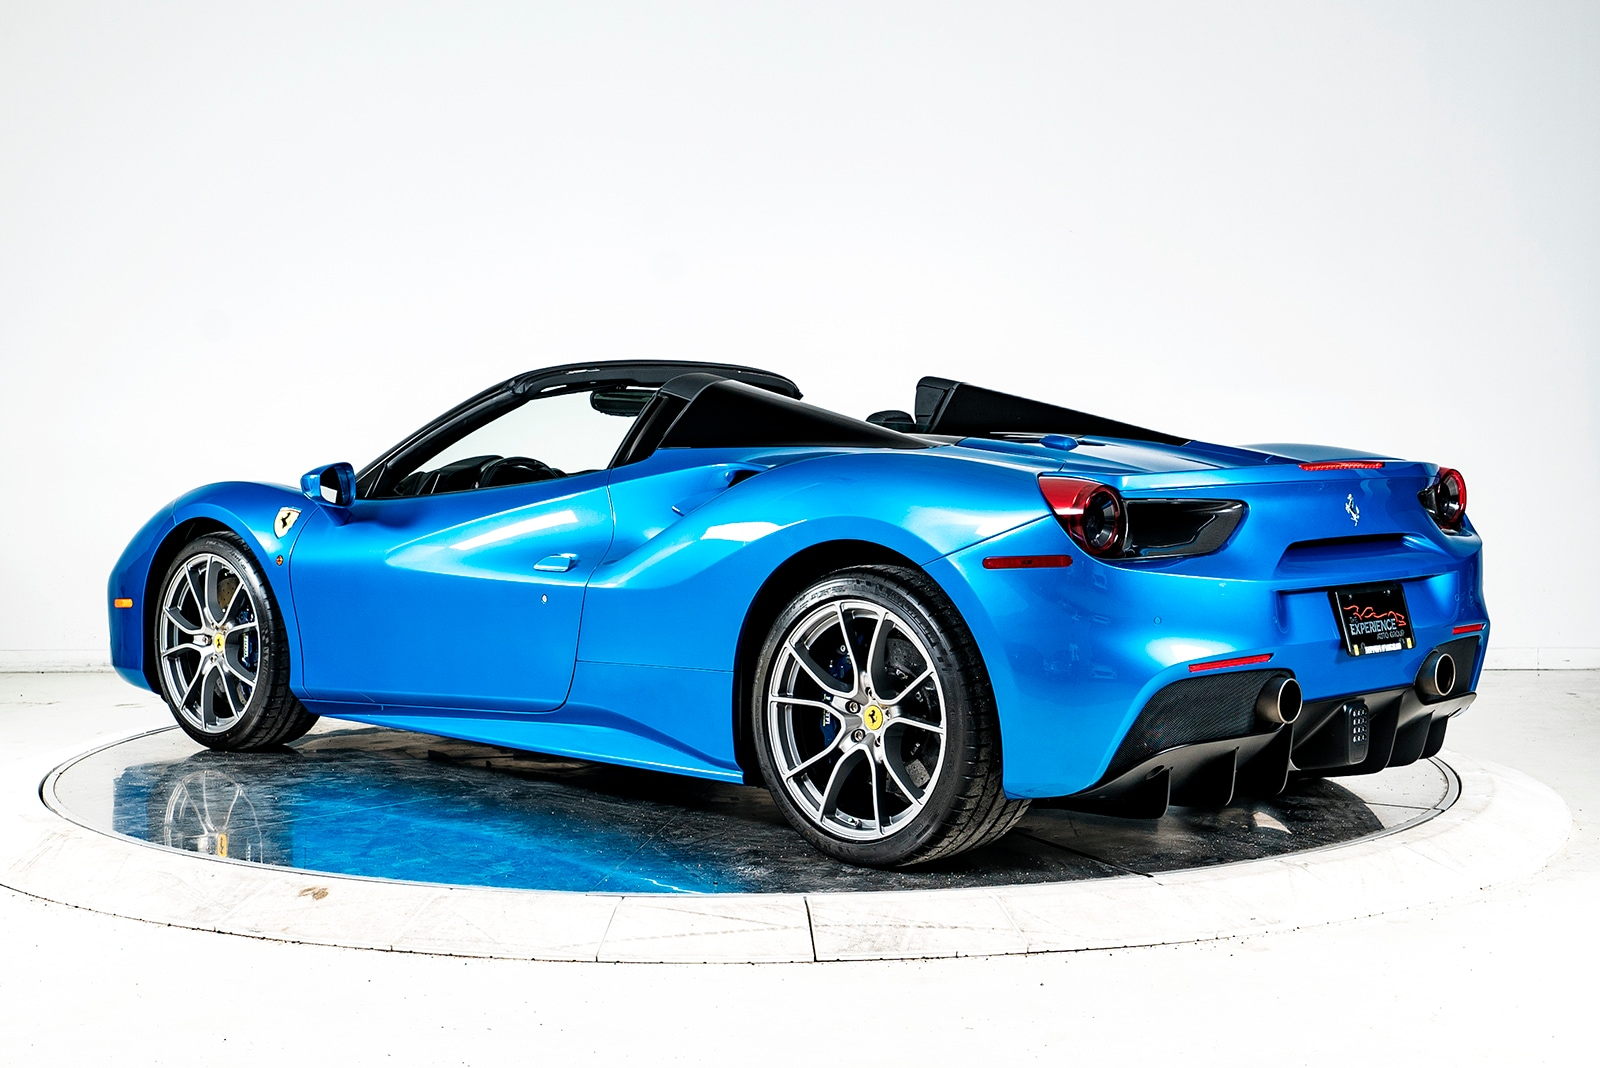 used 2017 ferrari 488 spider for sale plainview near long island ny vin zff80ama7h0222950. Black Bedroom Furniture Sets. Home Design Ideas